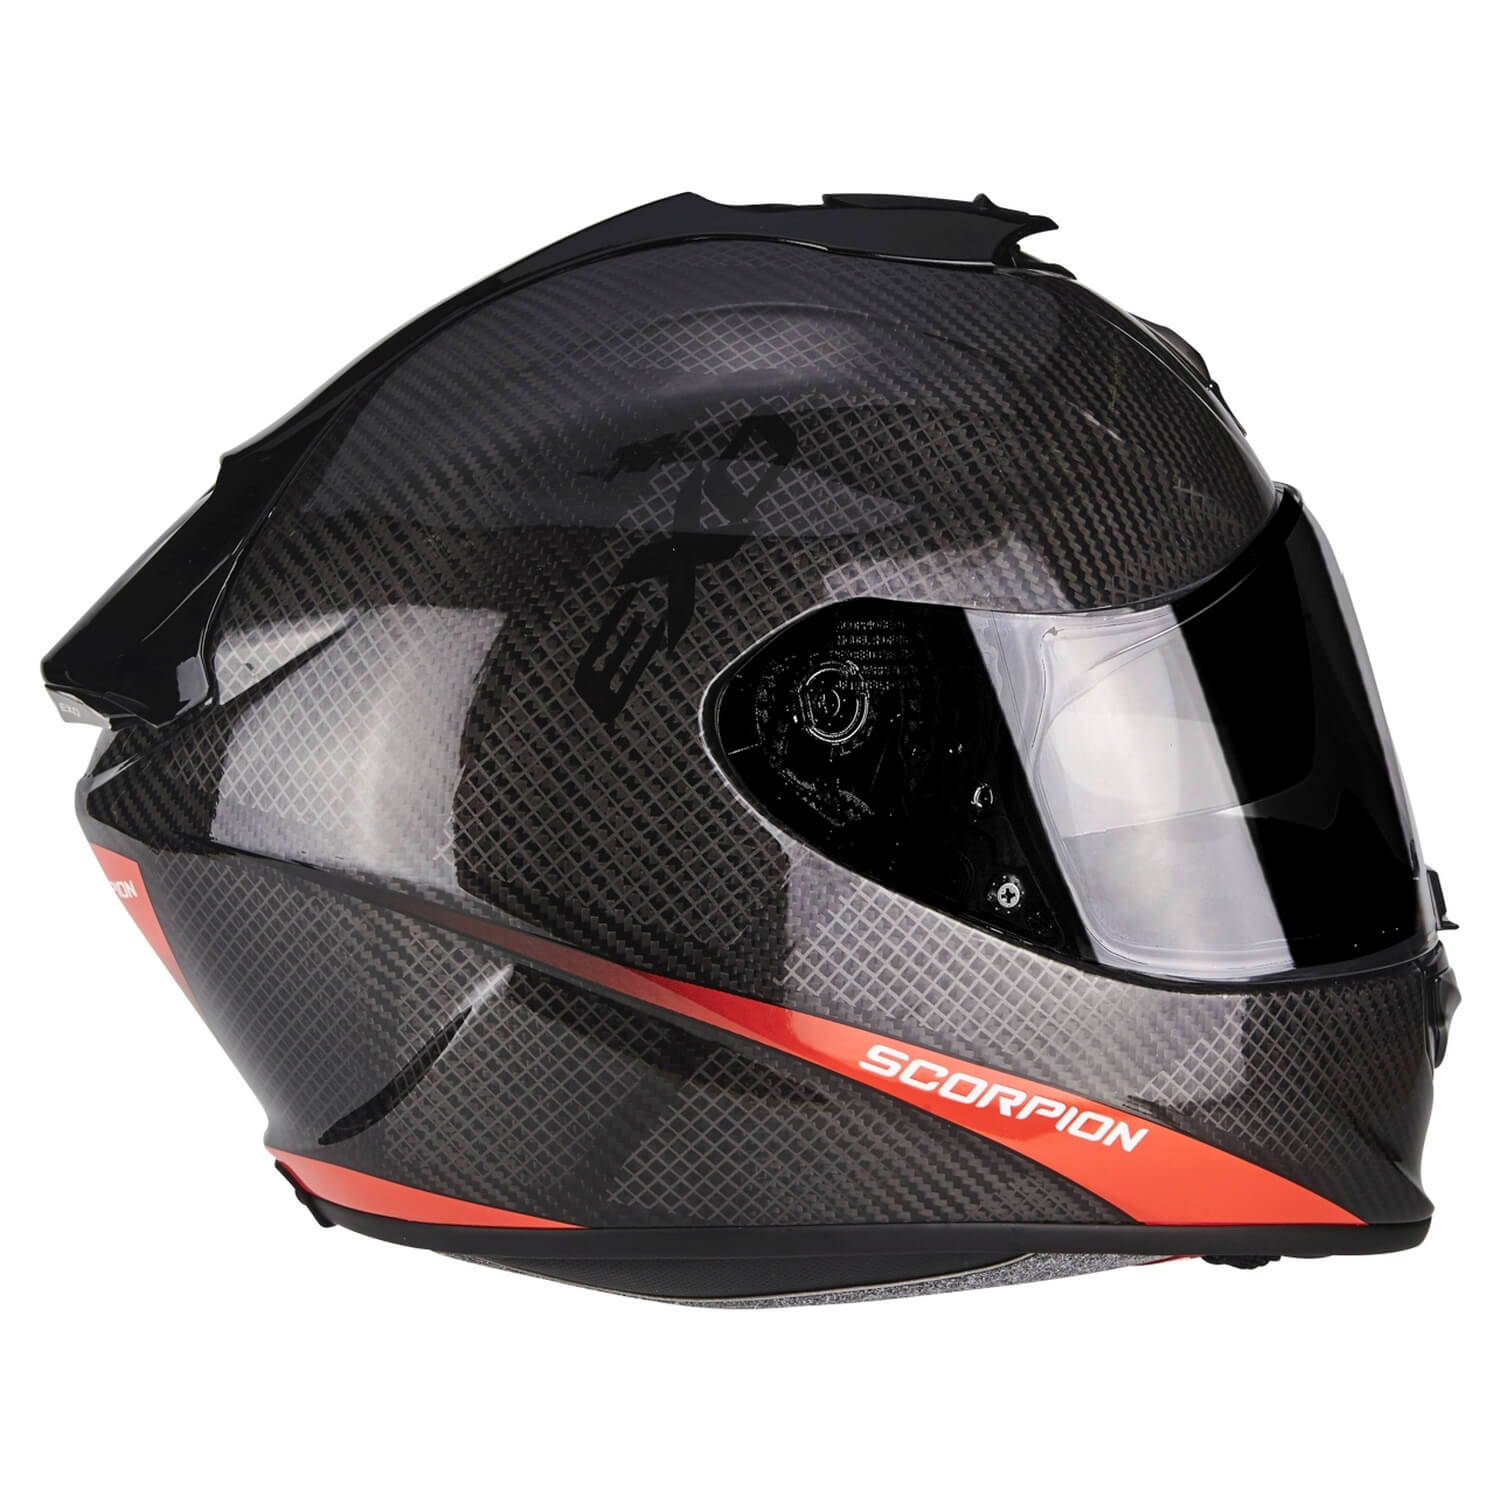 scorpion exo 1400 air carbon pure motorrad integralhelm touring schwarz neon rot. Black Bedroom Furniture Sets. Home Design Ideas